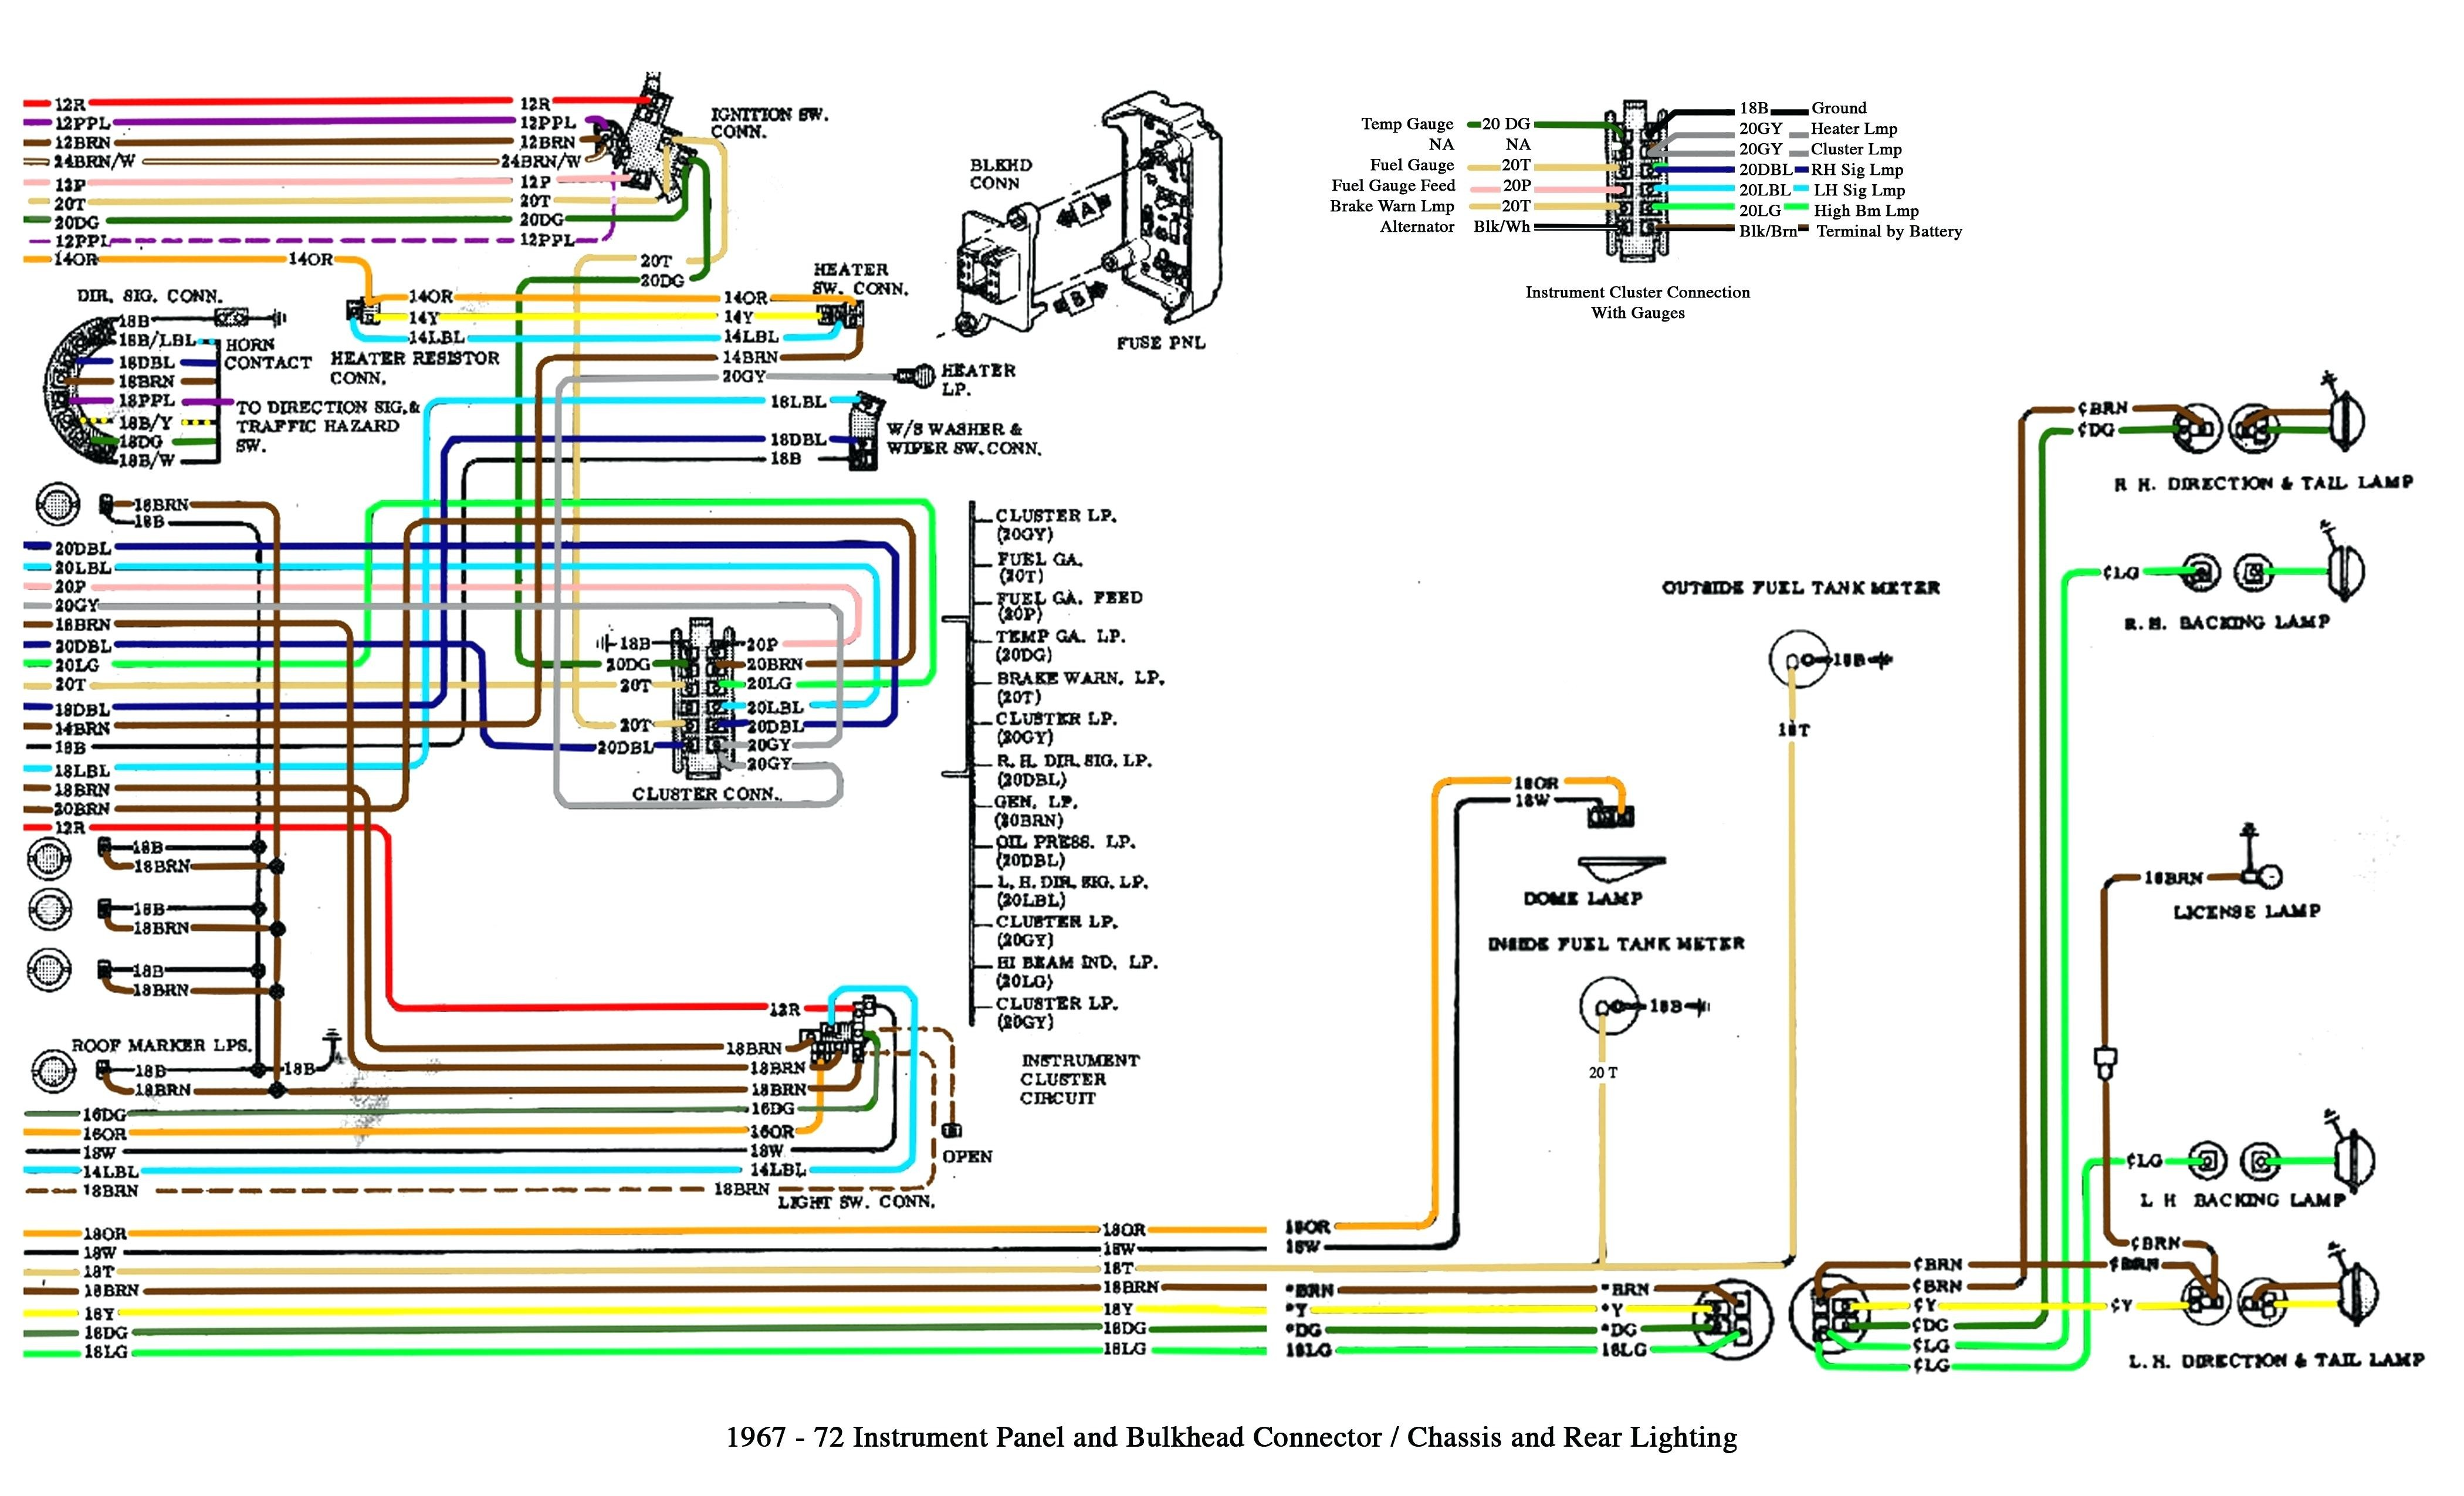 complete wiring diagram 2009 chevy cobalt